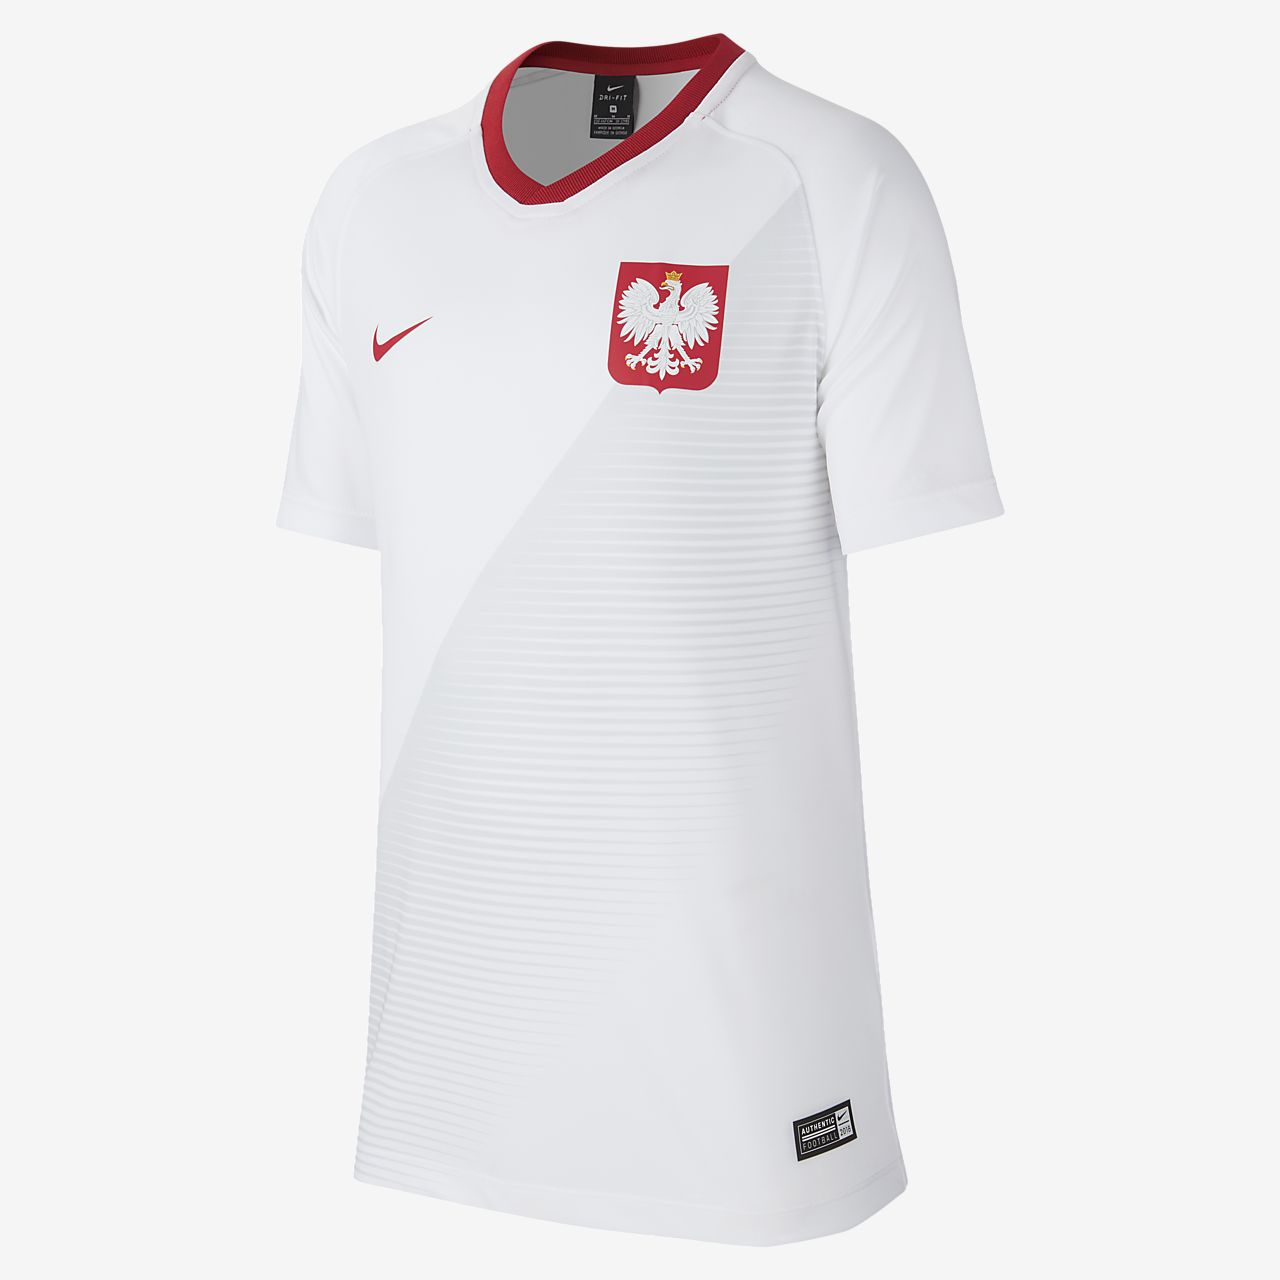 2018 Poland Stadium Home Older Kids' Football Shirt